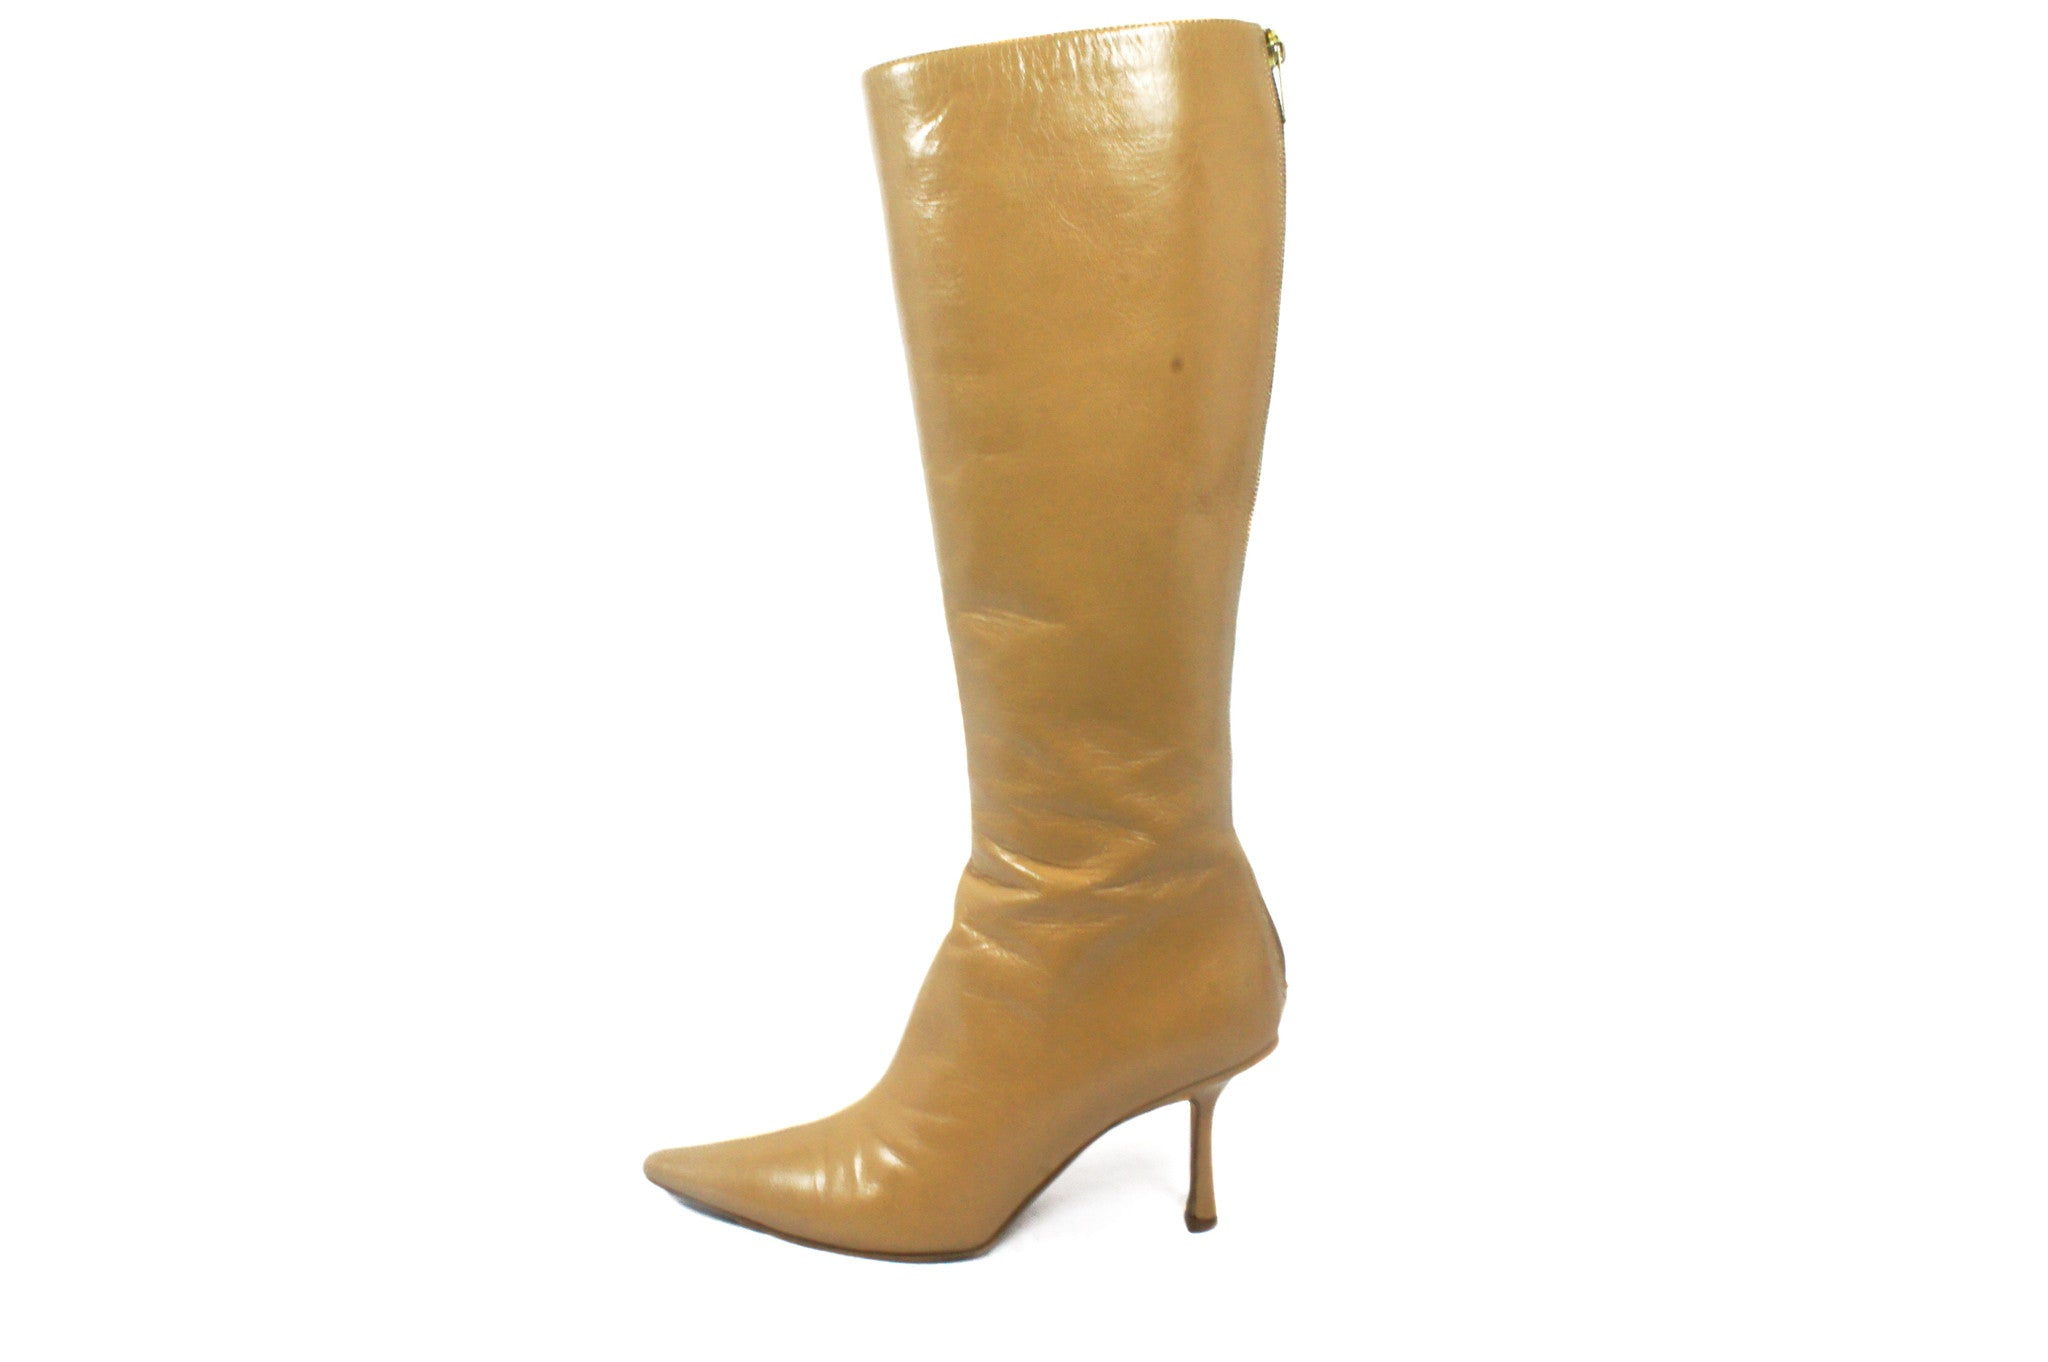 Jimmy Choo Beige Knee High Boots (Size 36.5) - Encore Consignment - 2